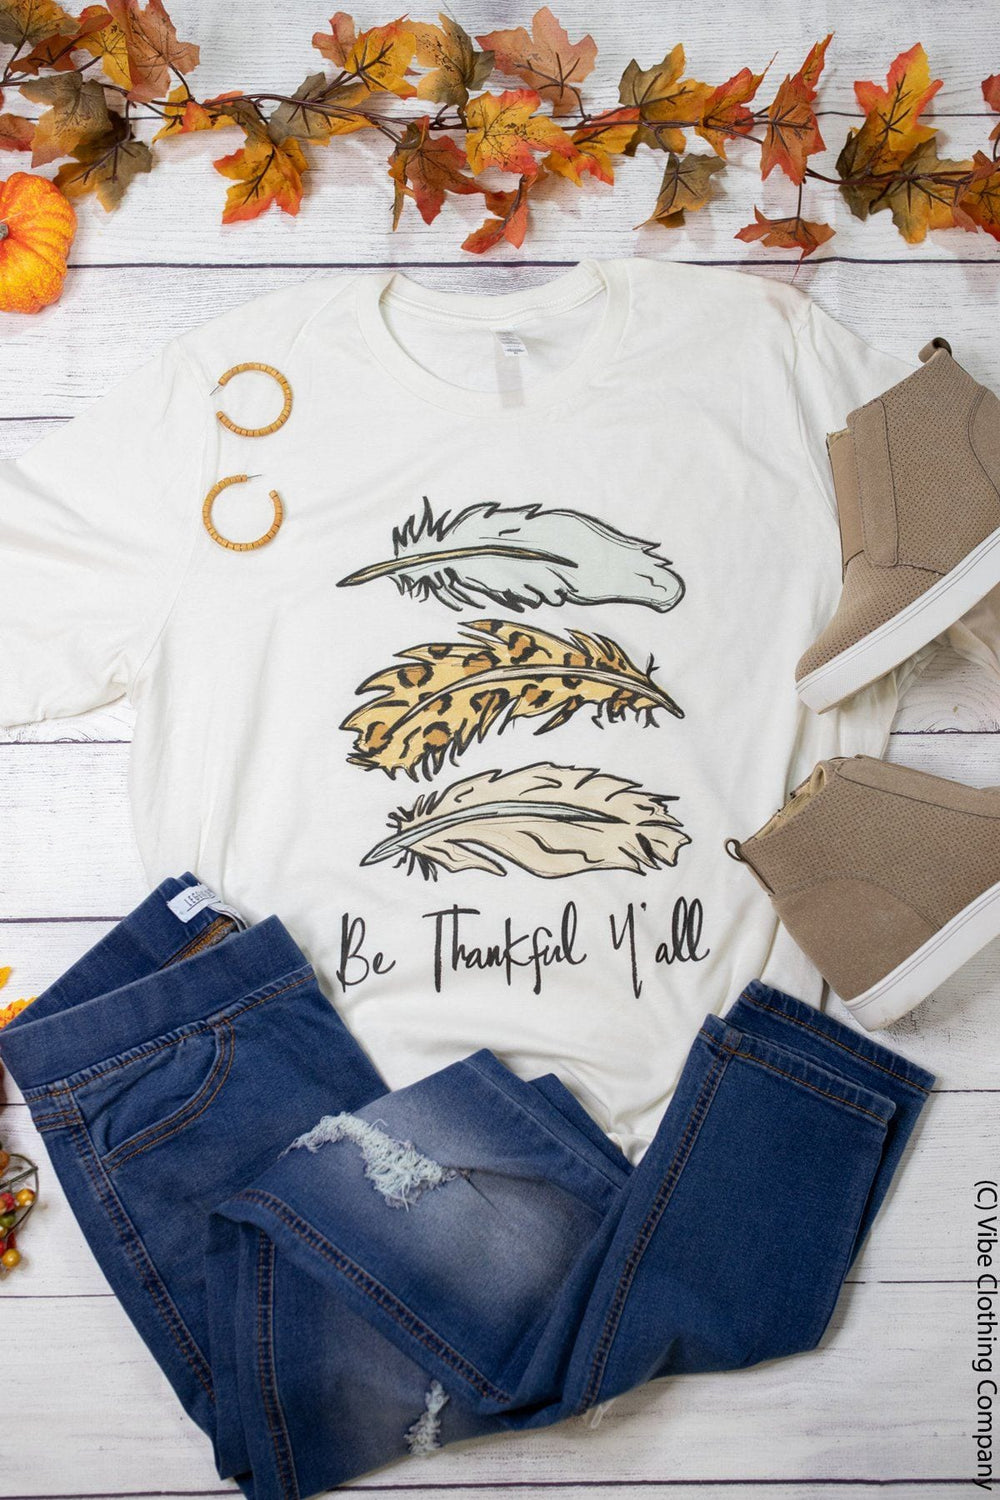 Be Thankful Graphic Tee graphic tees Mark tee